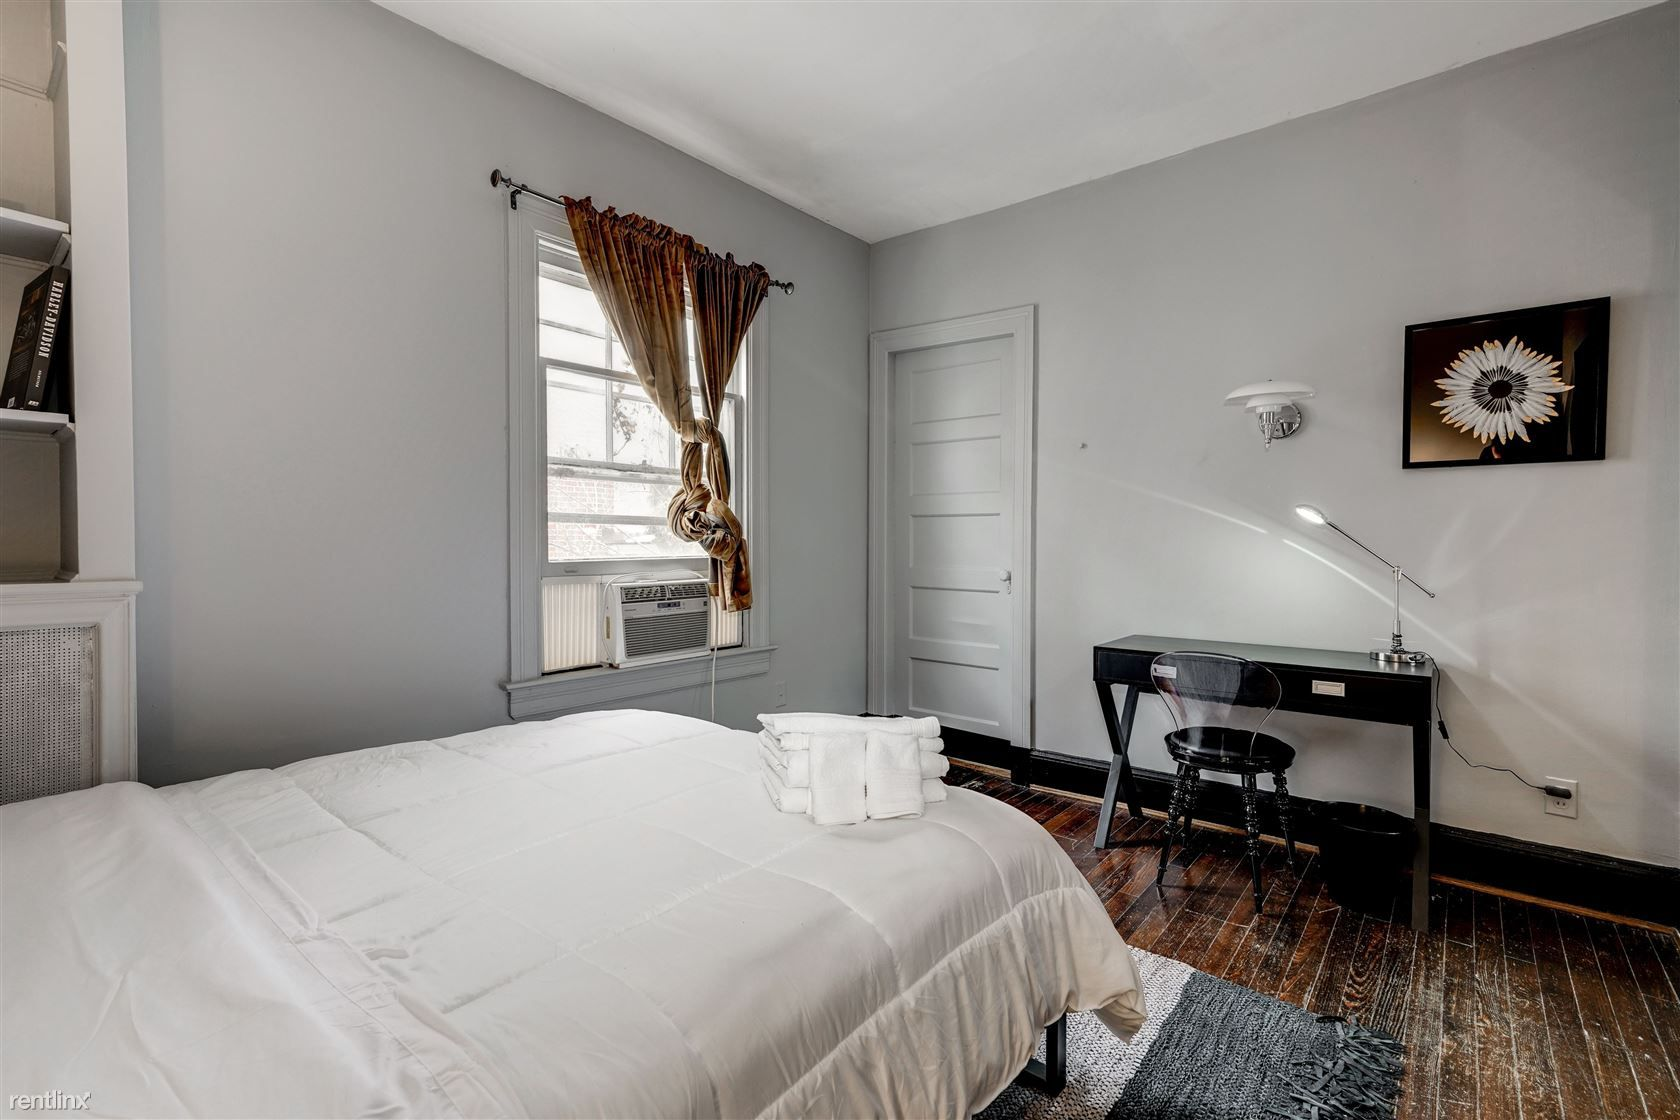 2270 Cathedral Avenue NW, Washington DC, DC, 20008 for rent